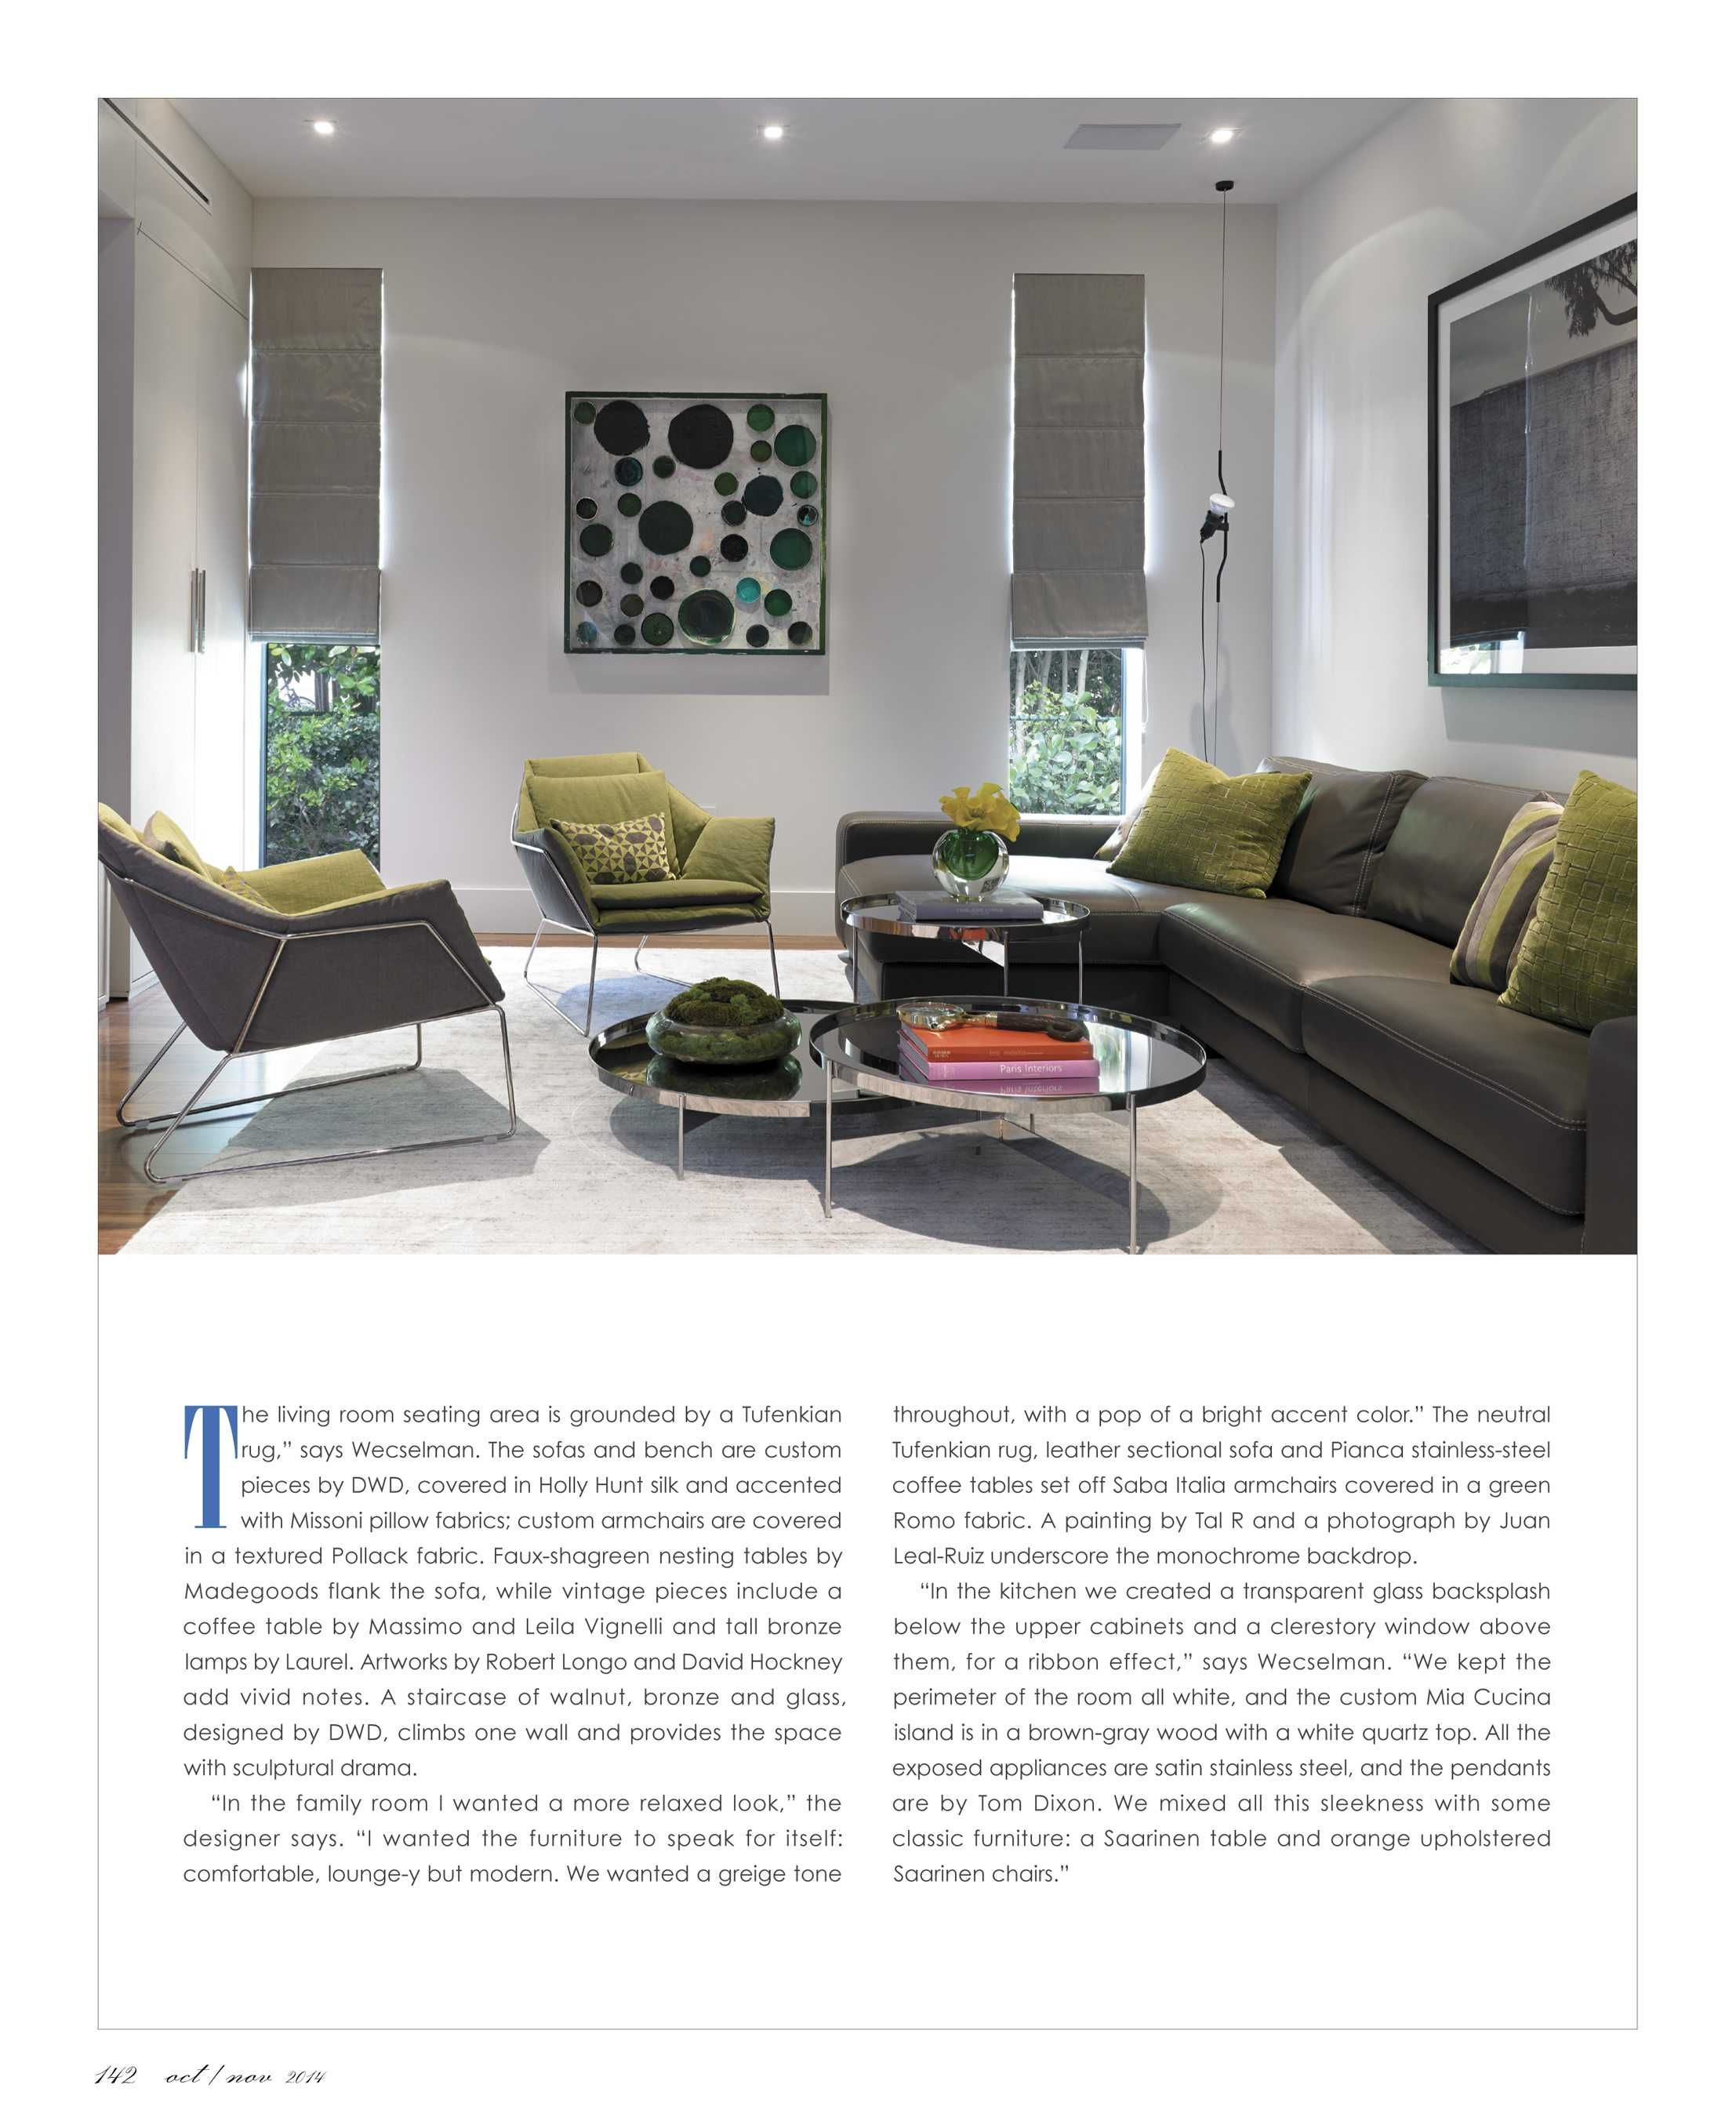 Interiors is the only magazine specifically targeted to the